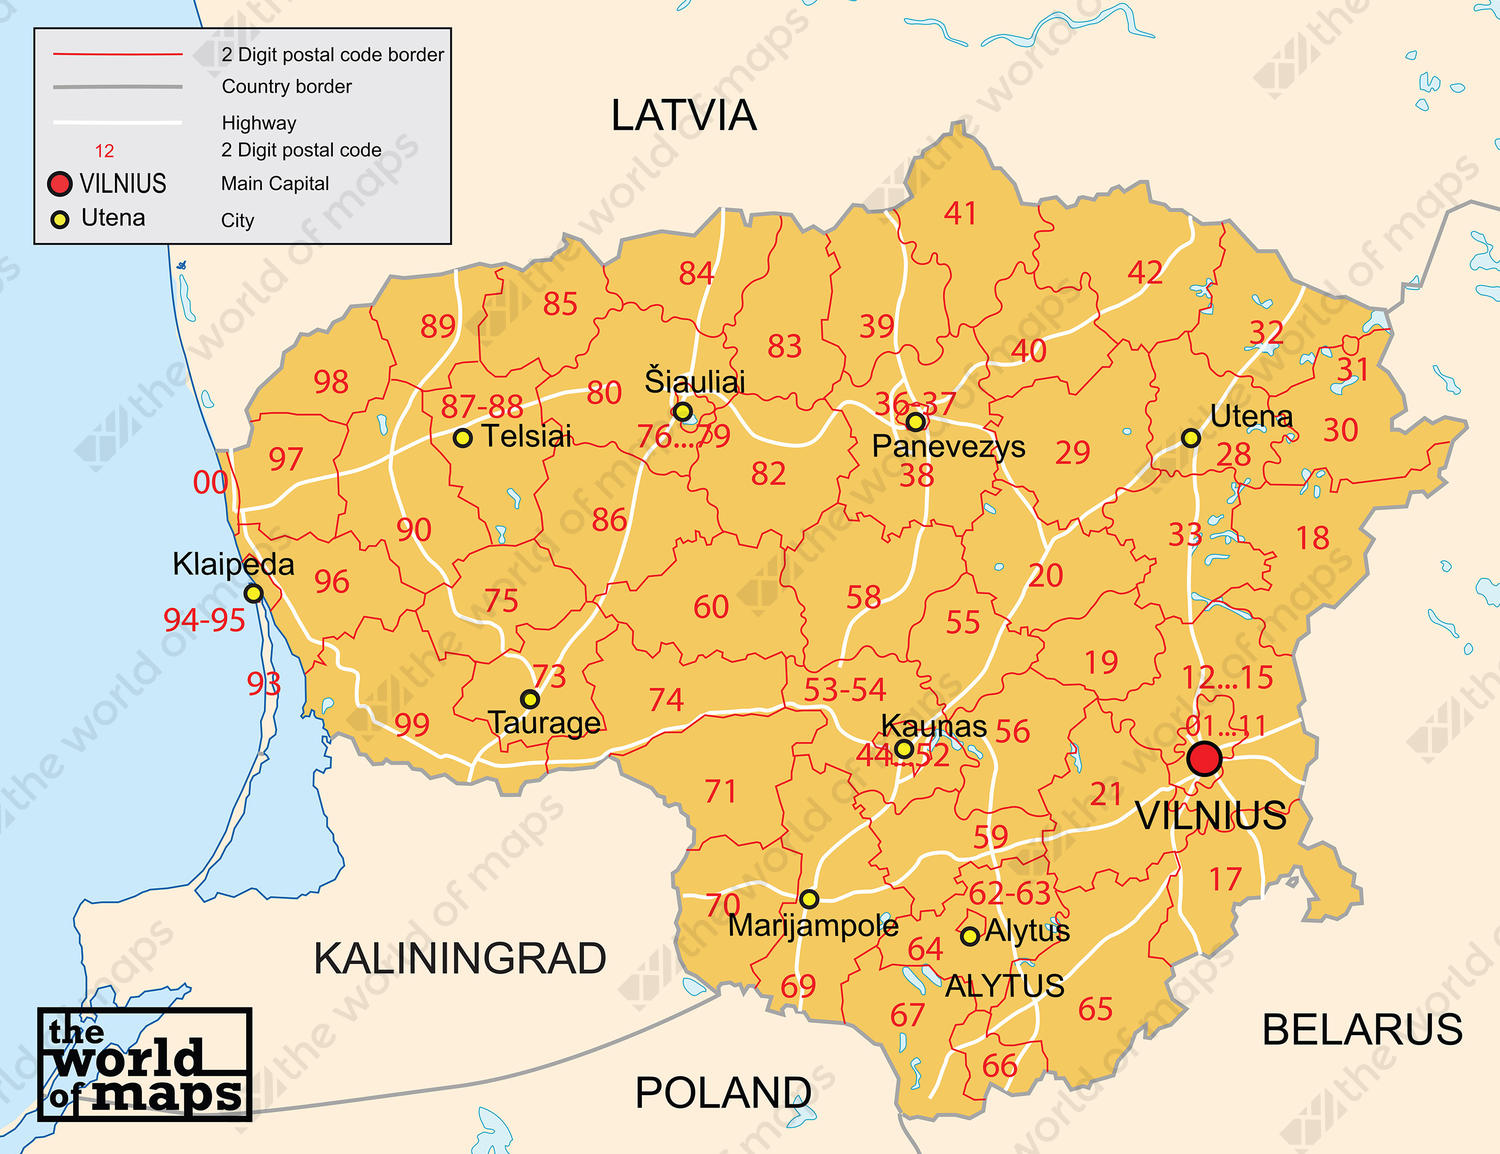 Digital postcode map Lithuania 2digit 88 The World of Mapscom